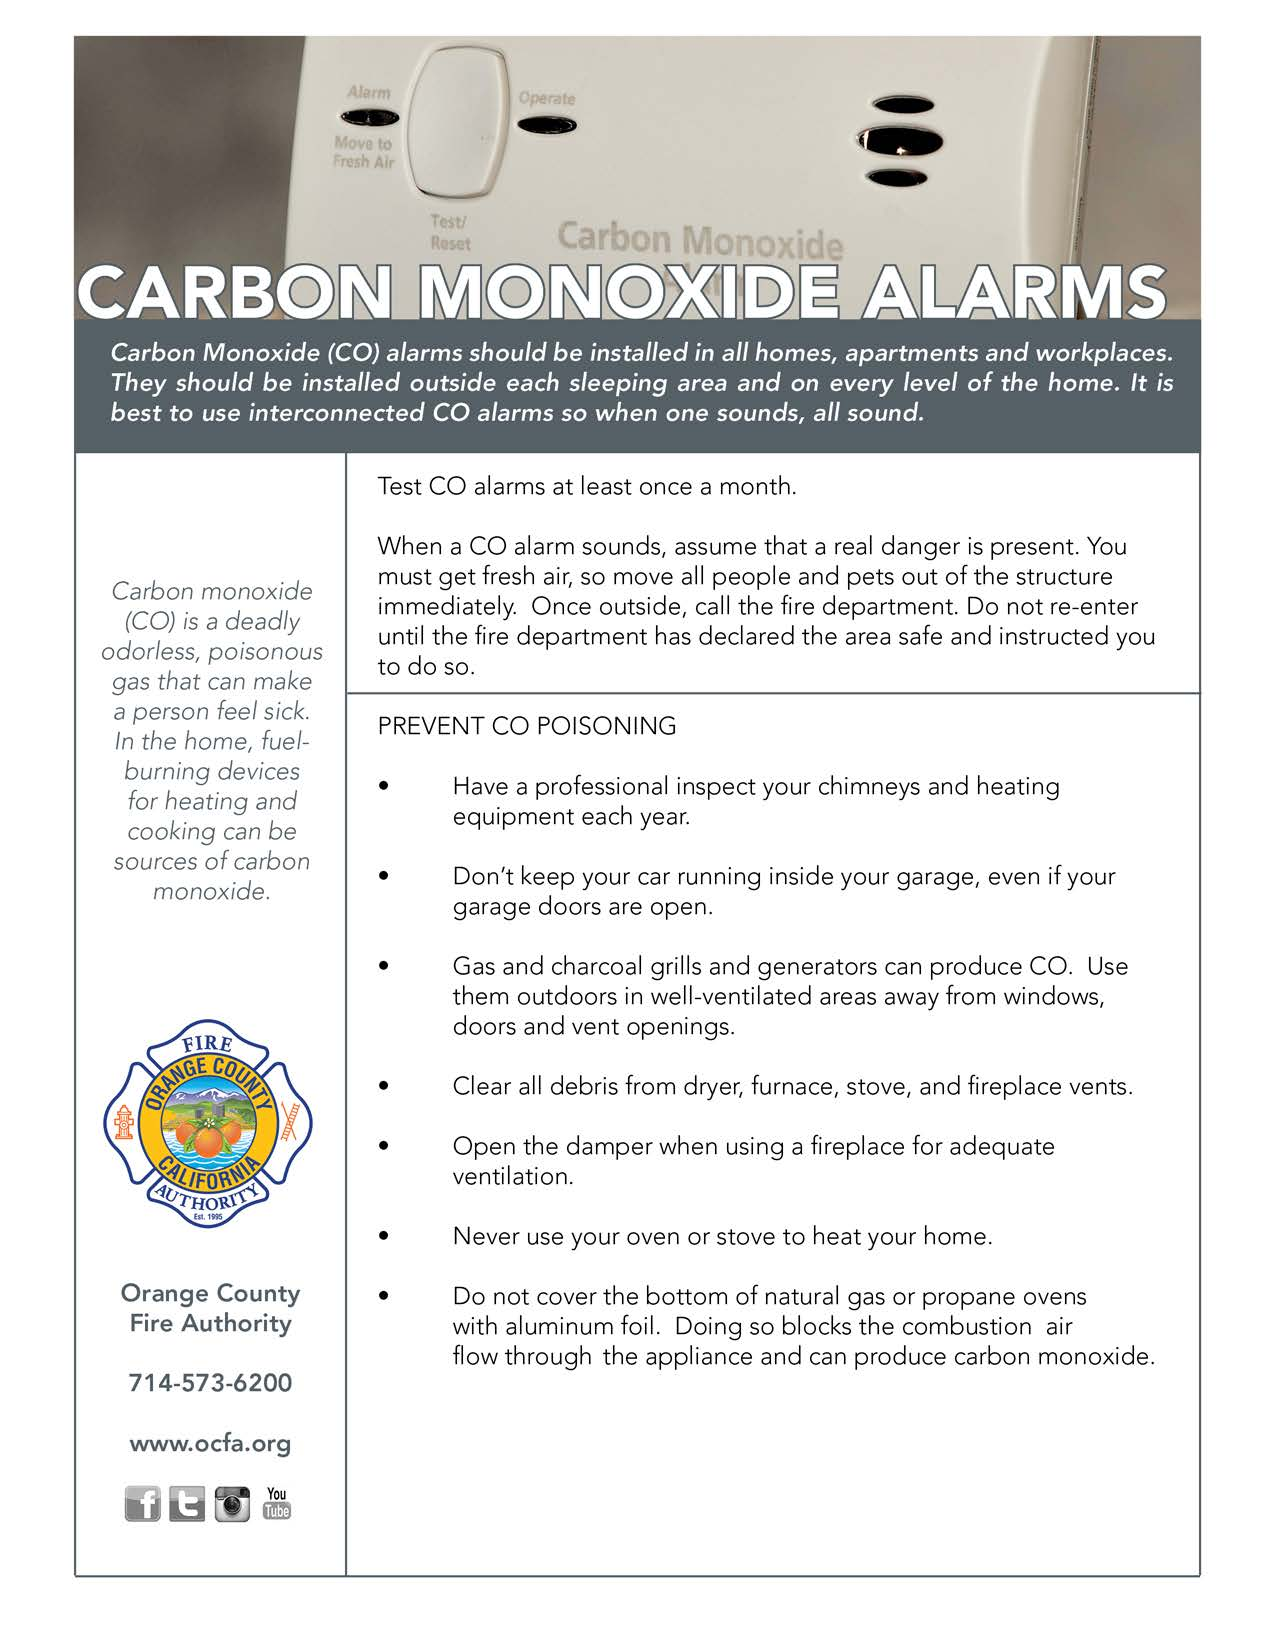 Carbon Monoxide Alarms Flyer